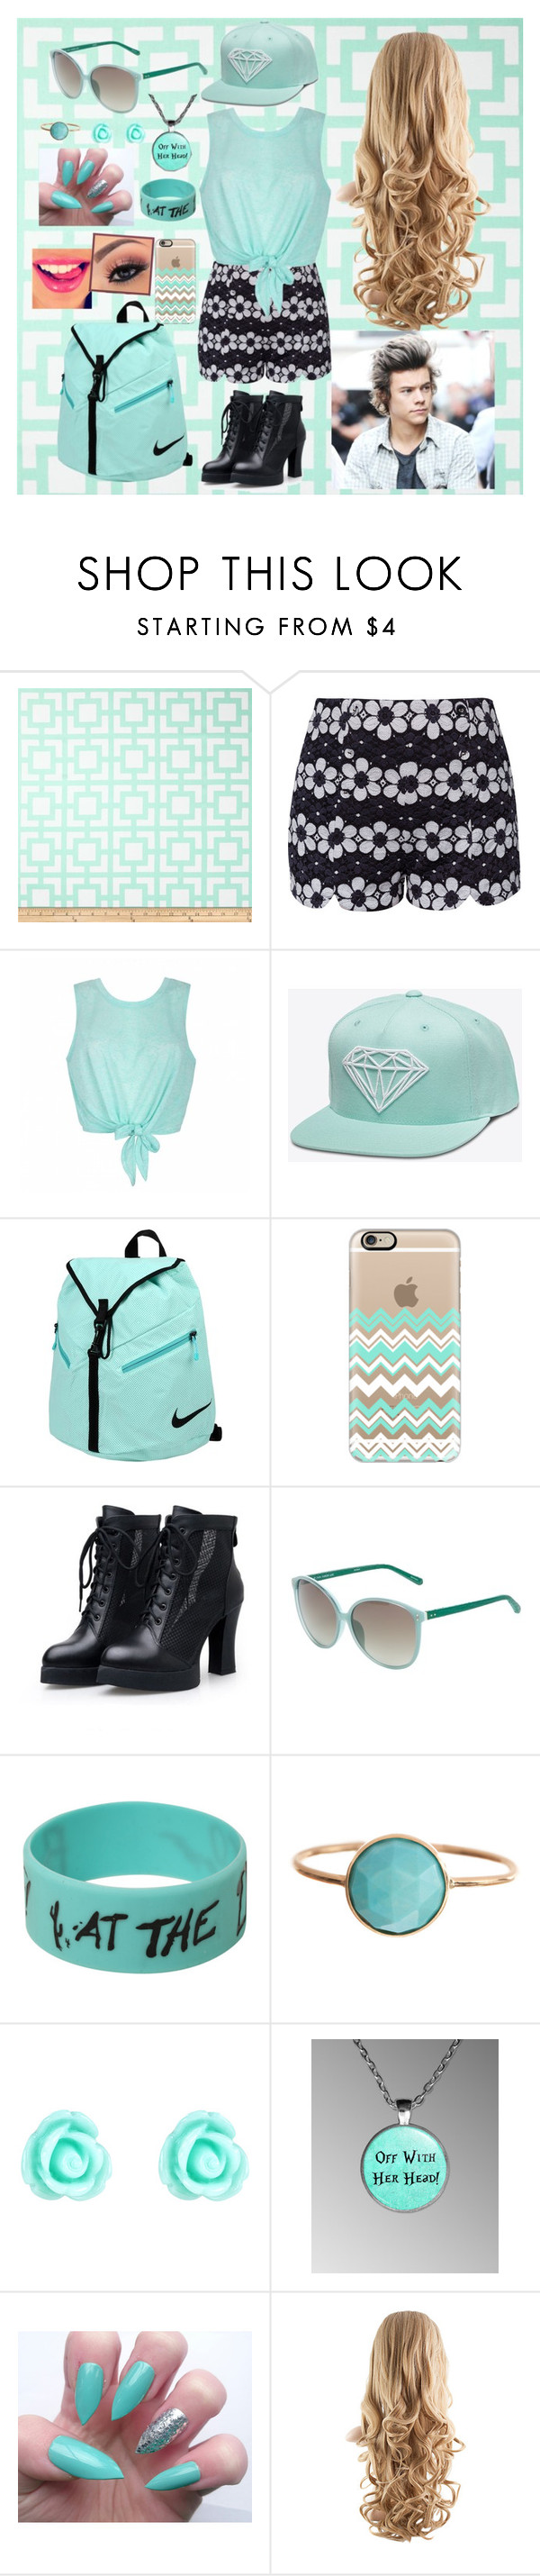 """""""School W/ Harry Styles"""" by britishgirl98 ❤ liked on Polyvore featuring Ally Fashion, NIKE, Casetify, Linda Farrow, Ariel Gordon and Monsoon"""